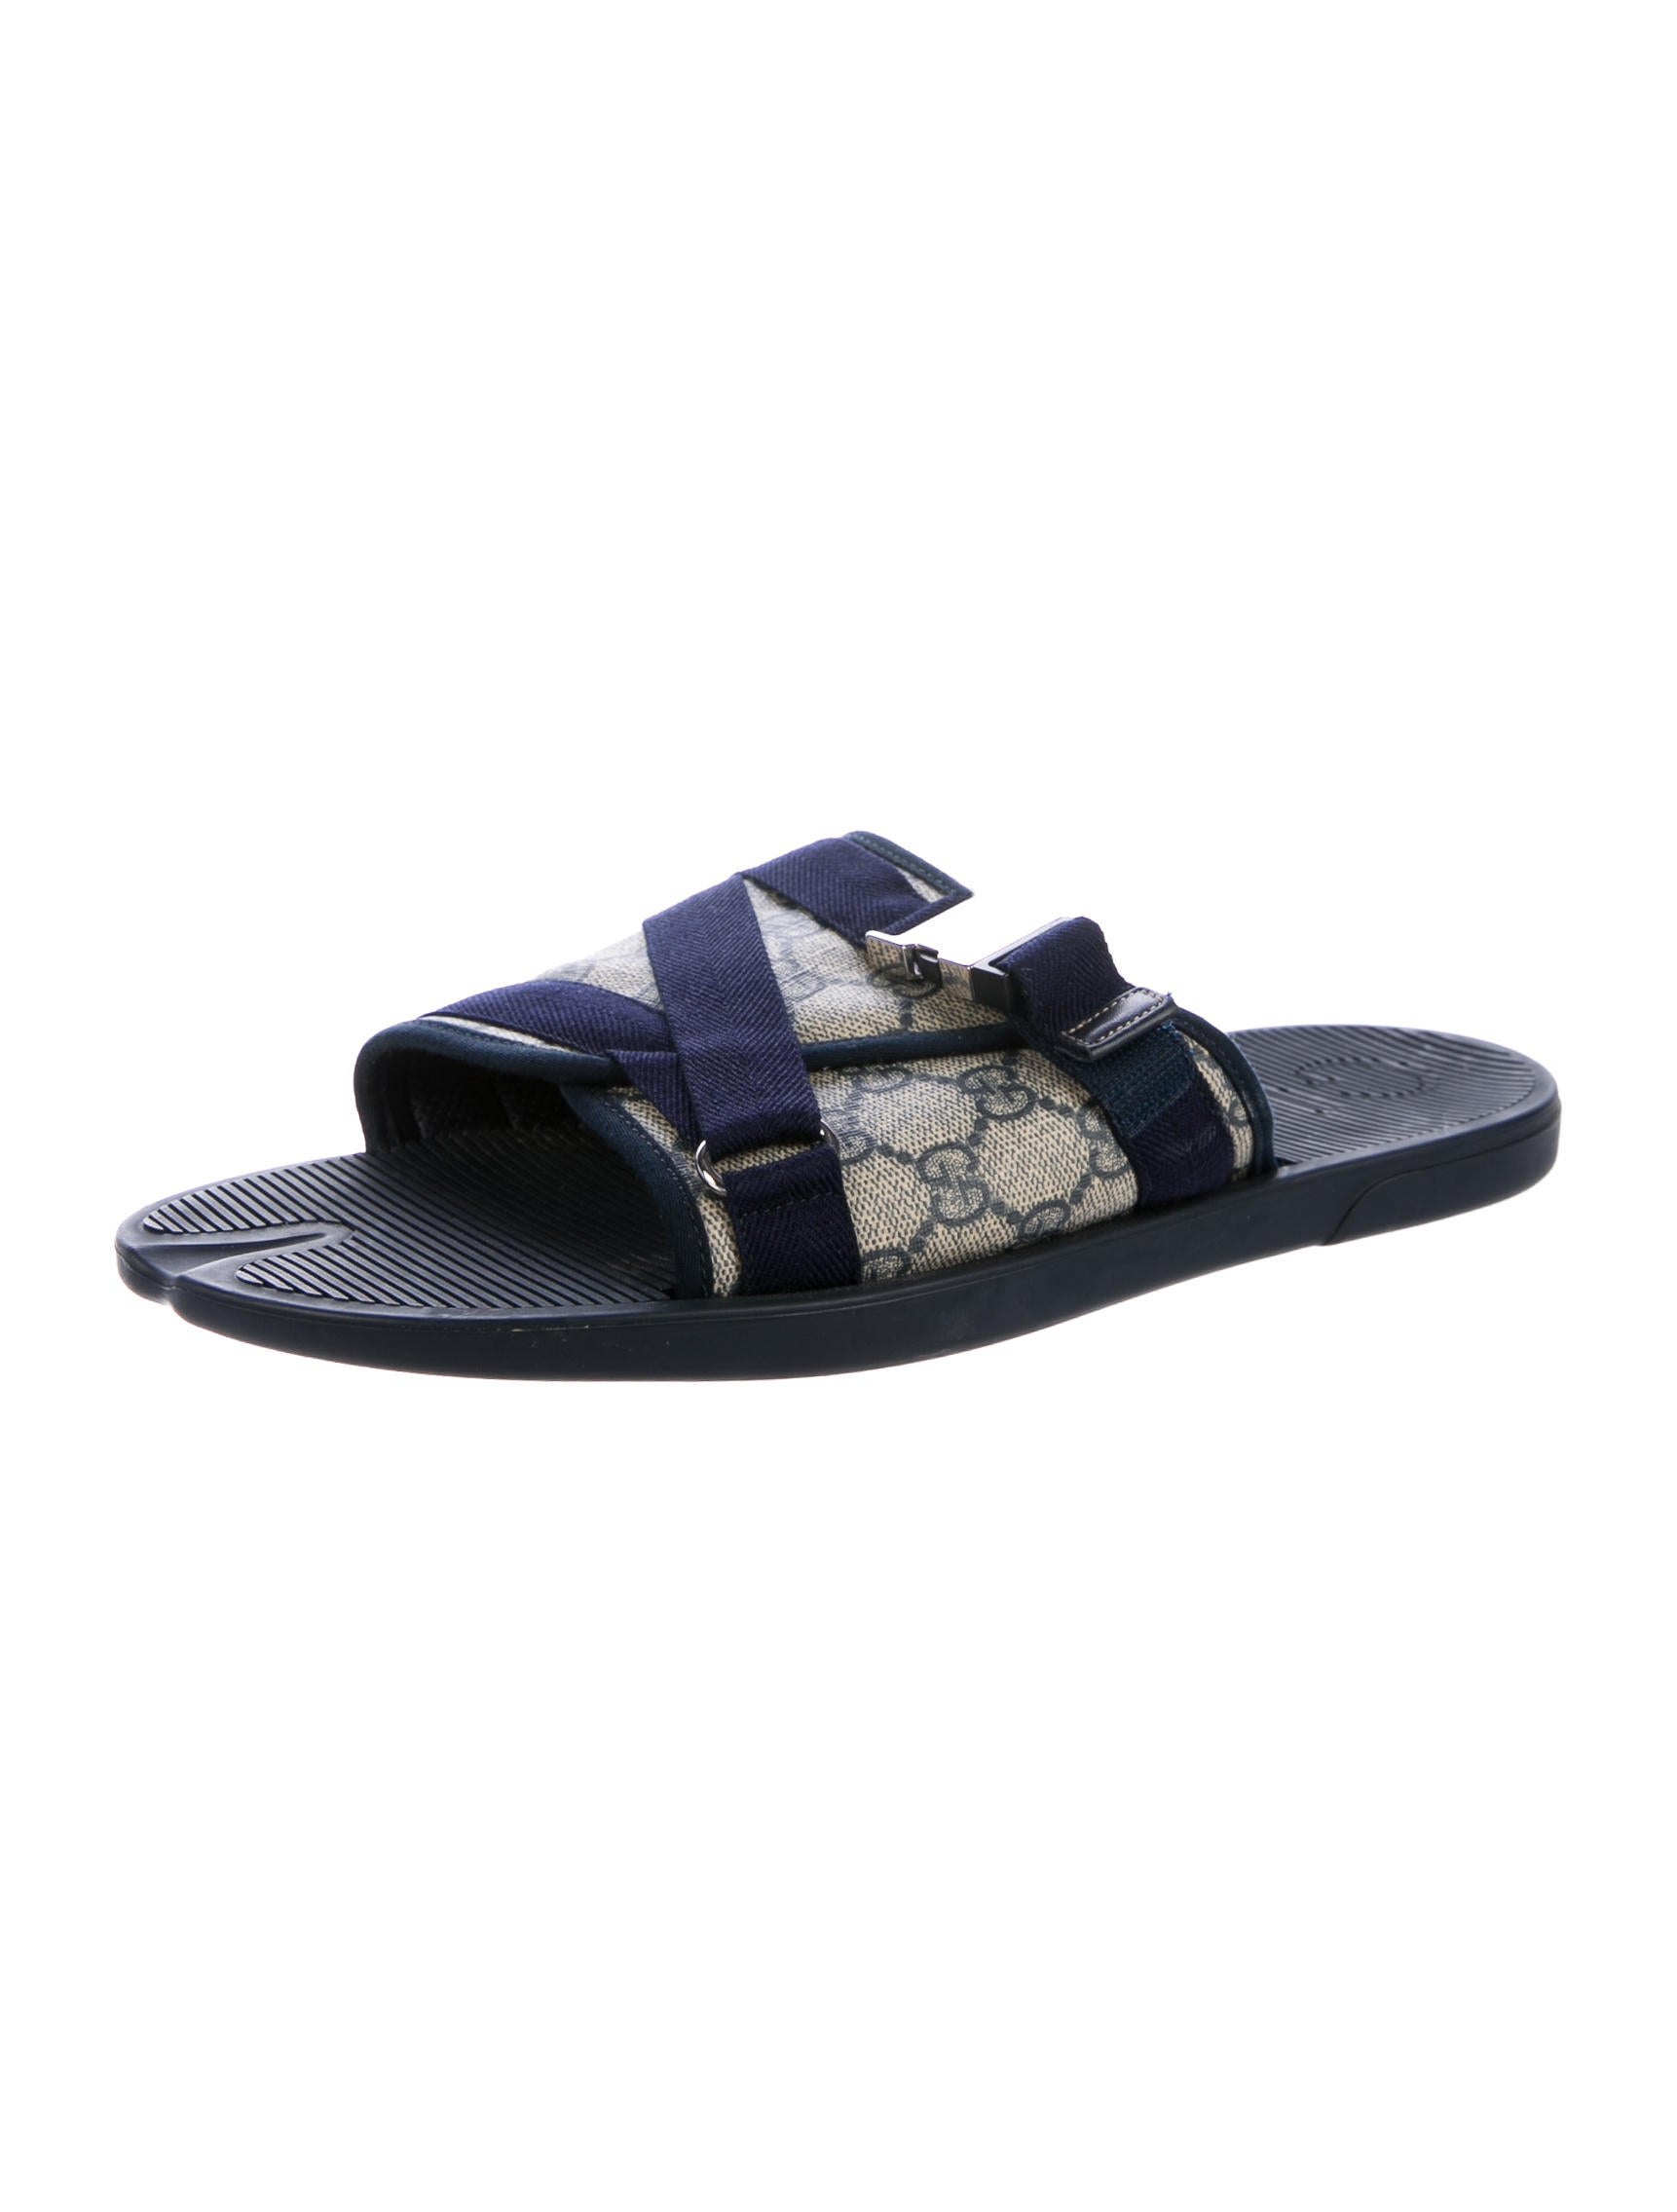 gucci gg canvas slide sandals shoes guc164704 the